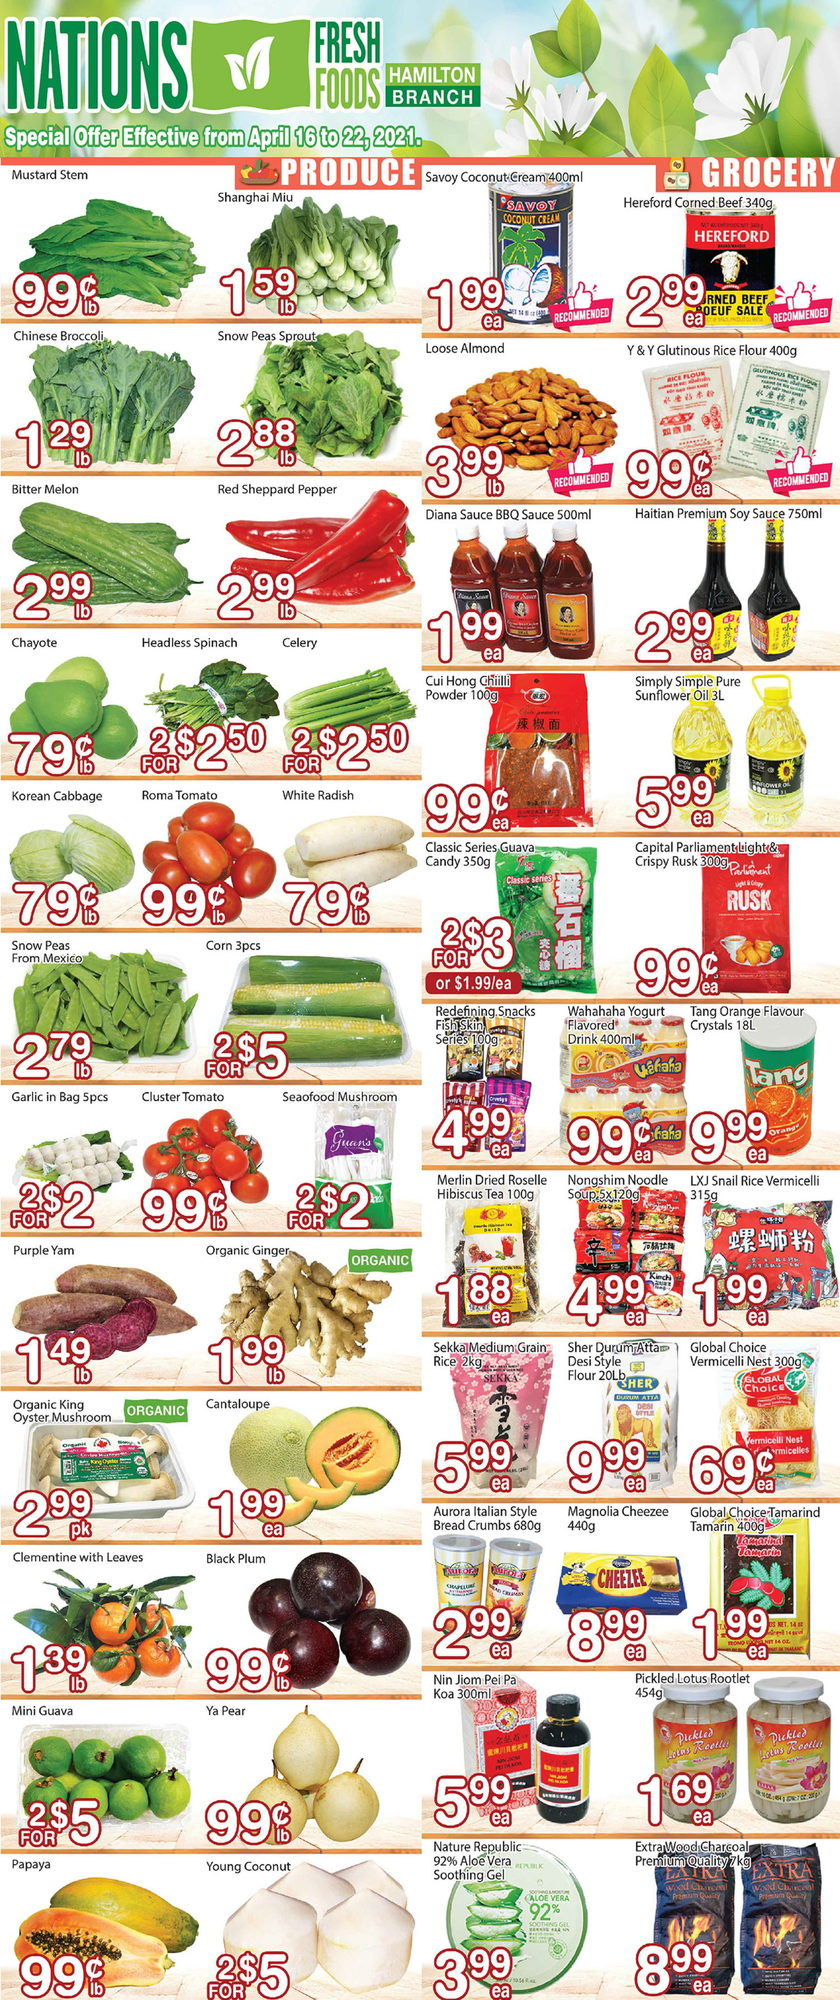 Nations Fresh Foods - Weekly Flyer Specials